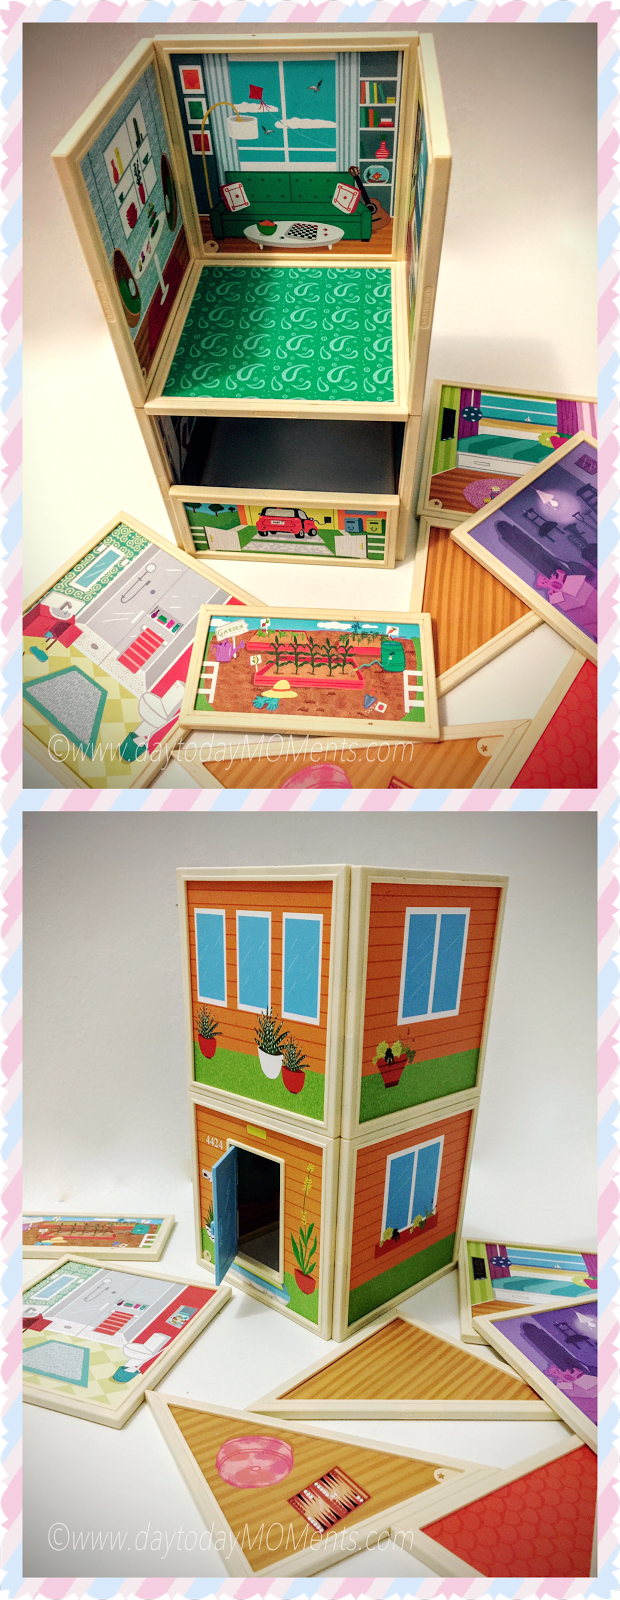 magnetic dolls and house set